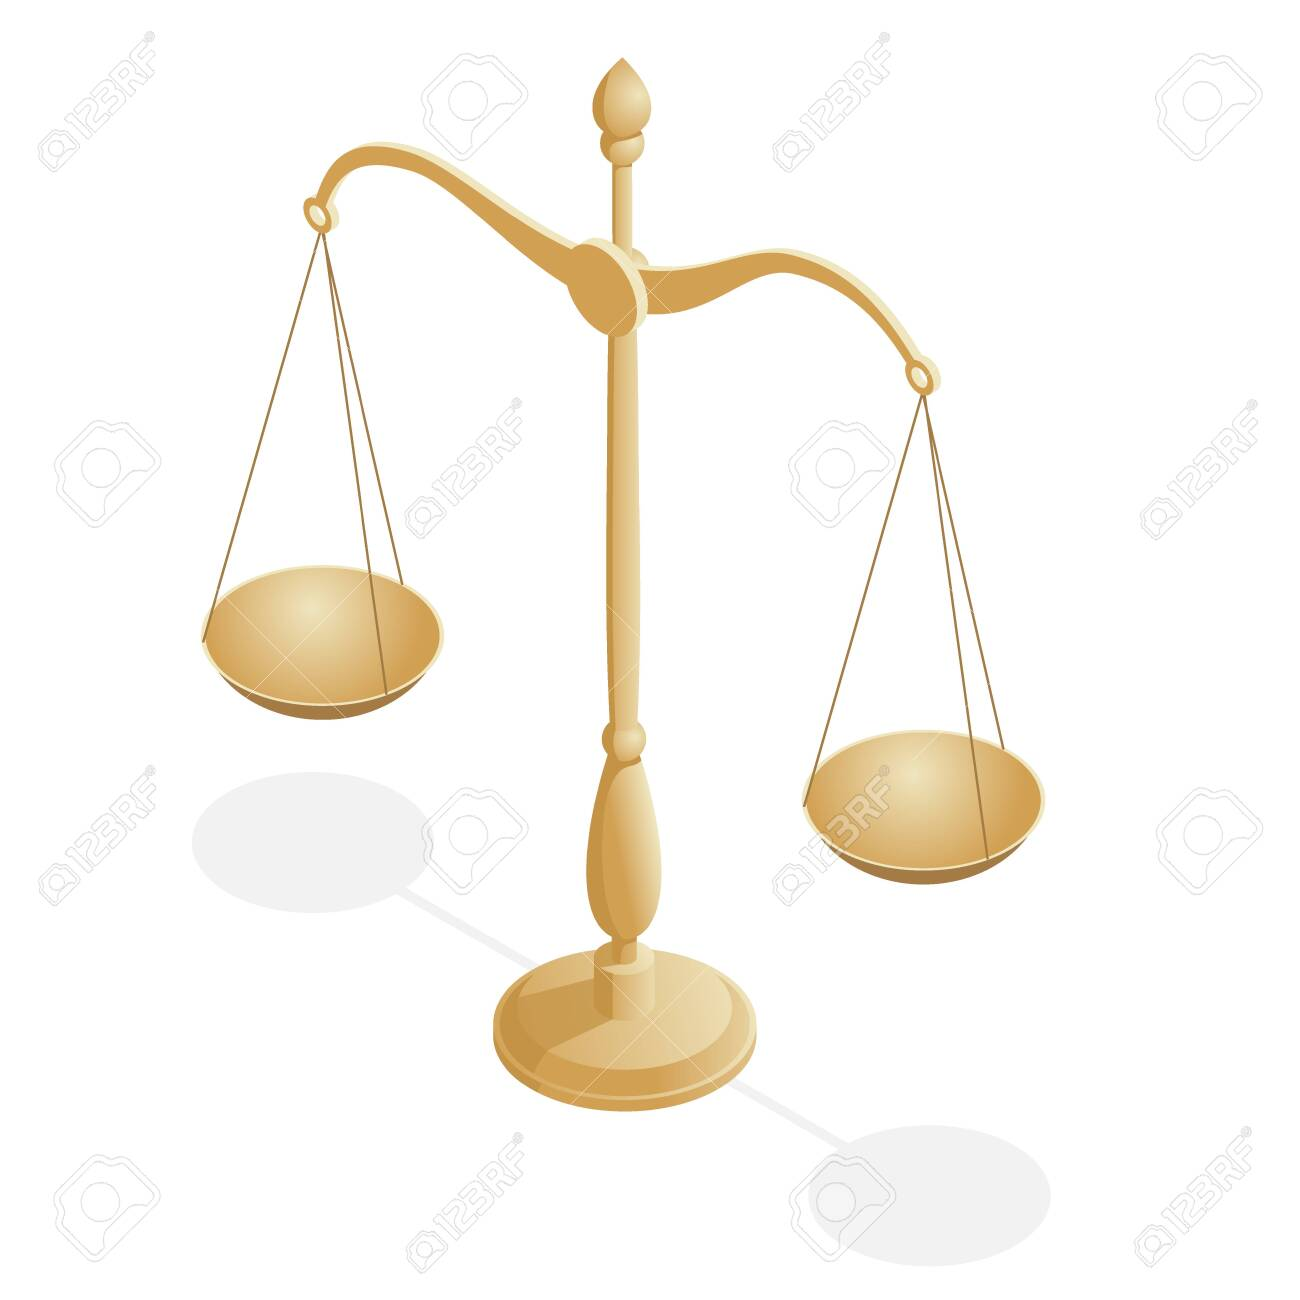 Isometric symbol of law and justice, law and justice, legal, jurisprudence. - 125384923